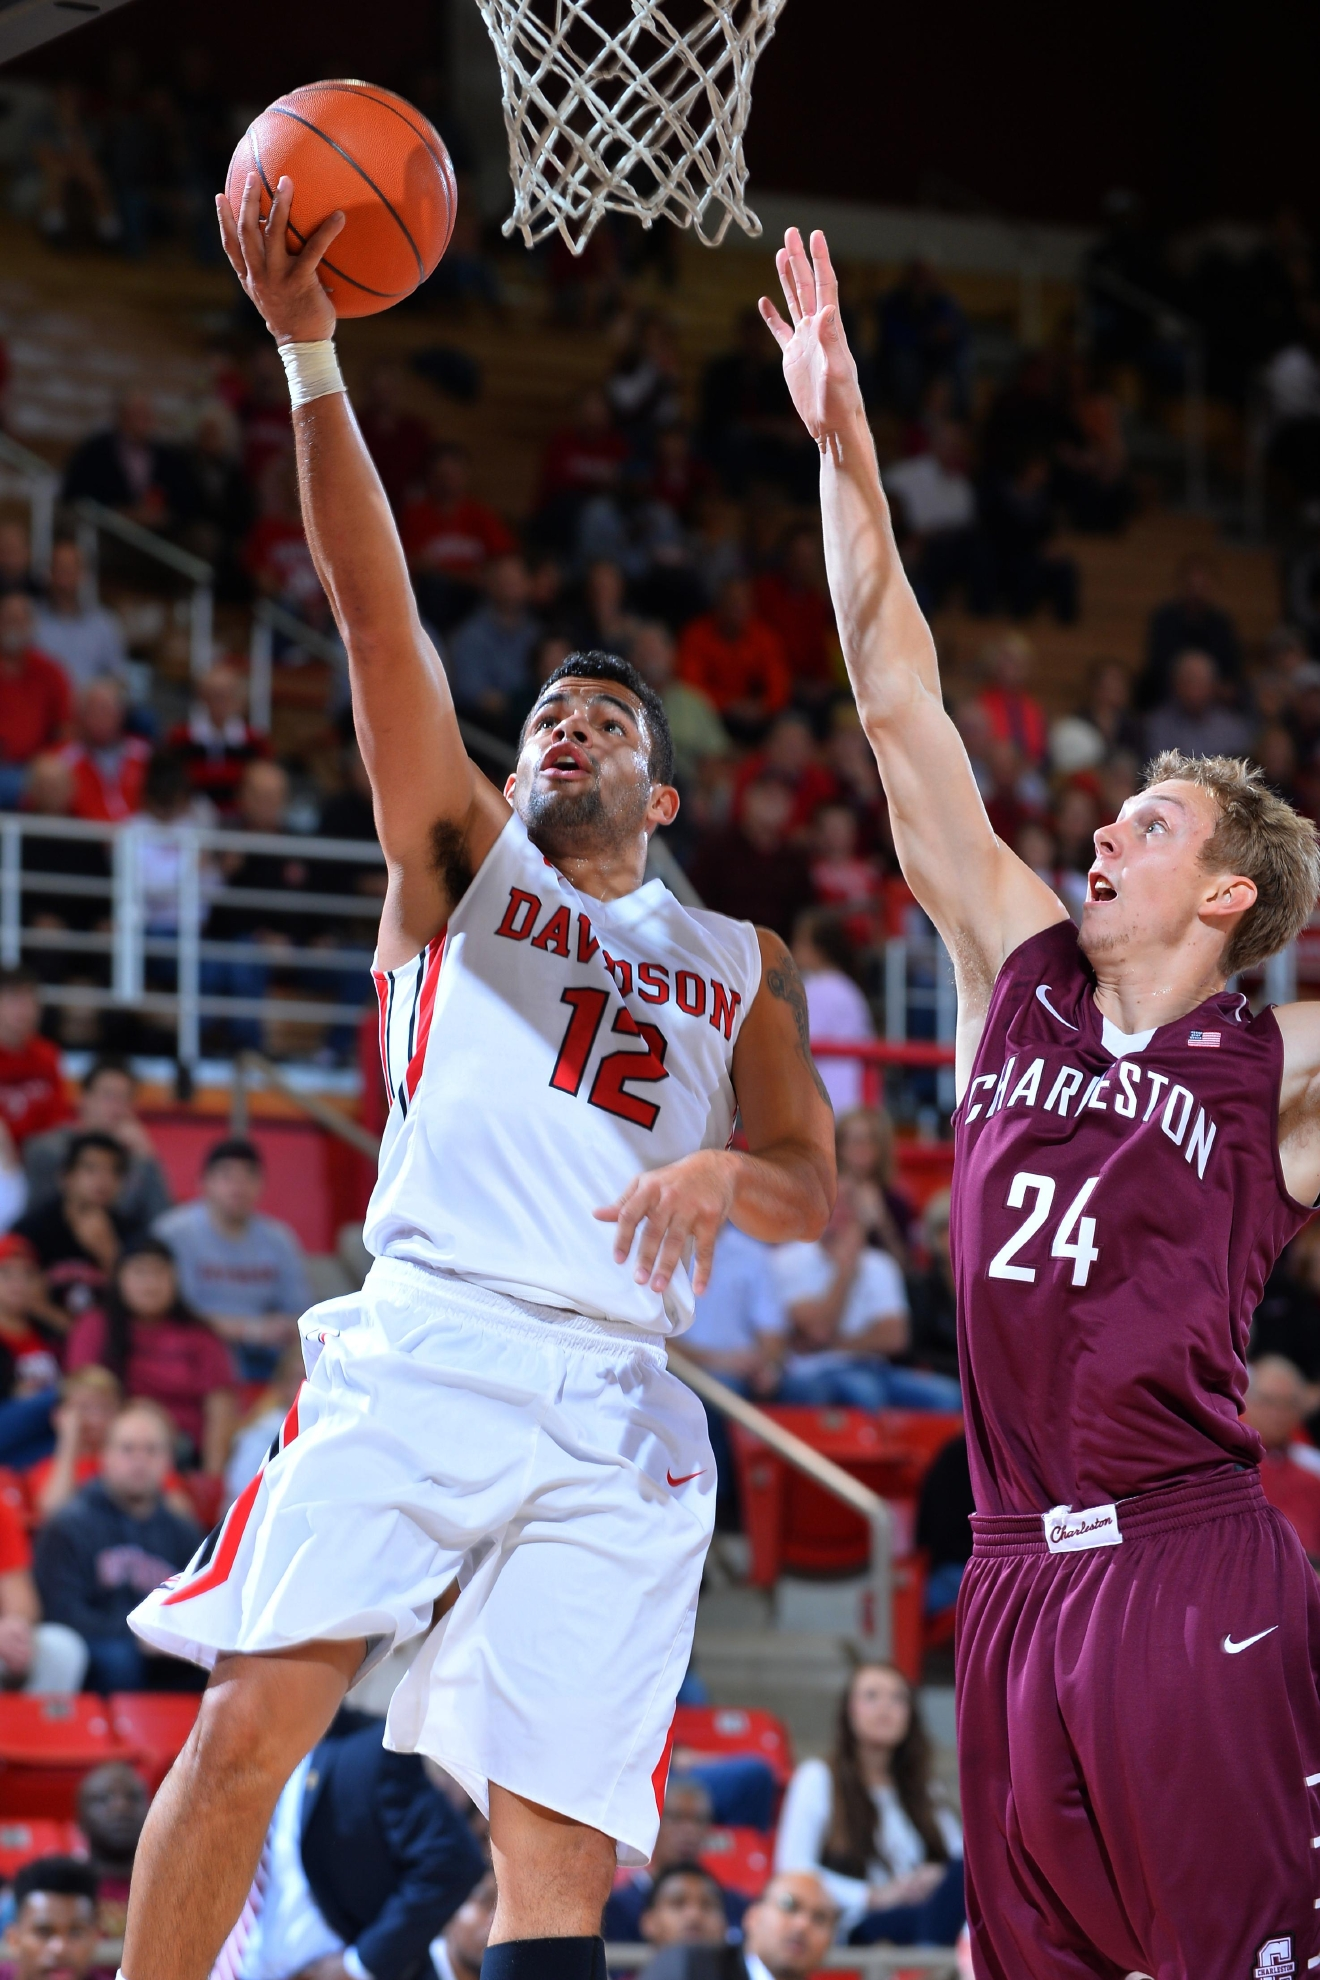 NCAA BASKETBALL:  NOV 21 College of Charleston at Davidson